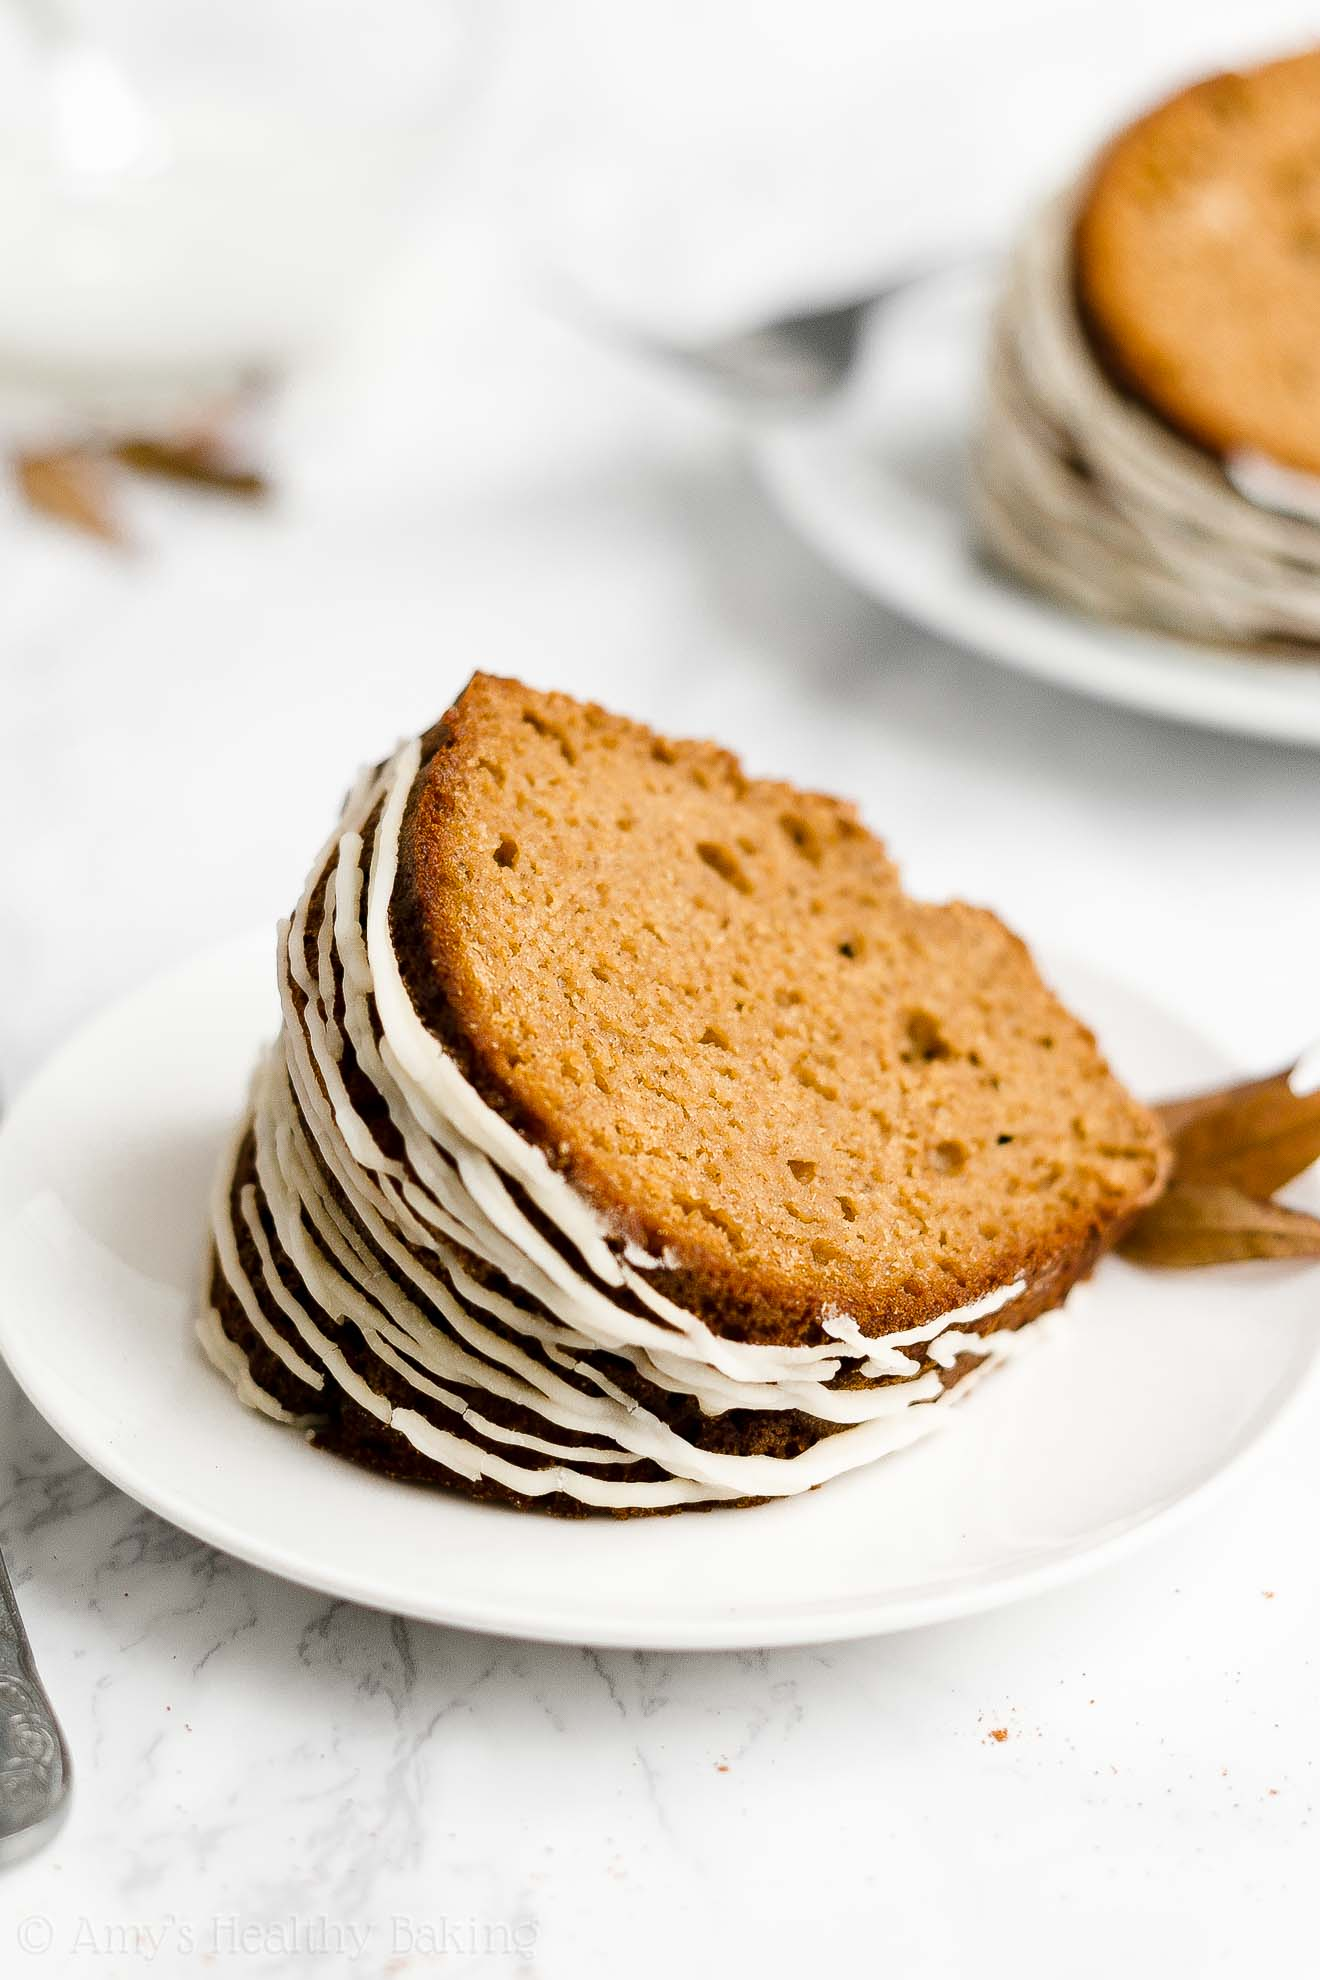 Best Ever Easy Healthy Low Calorie Moist Gingerbread Bundt Cake with Glaze